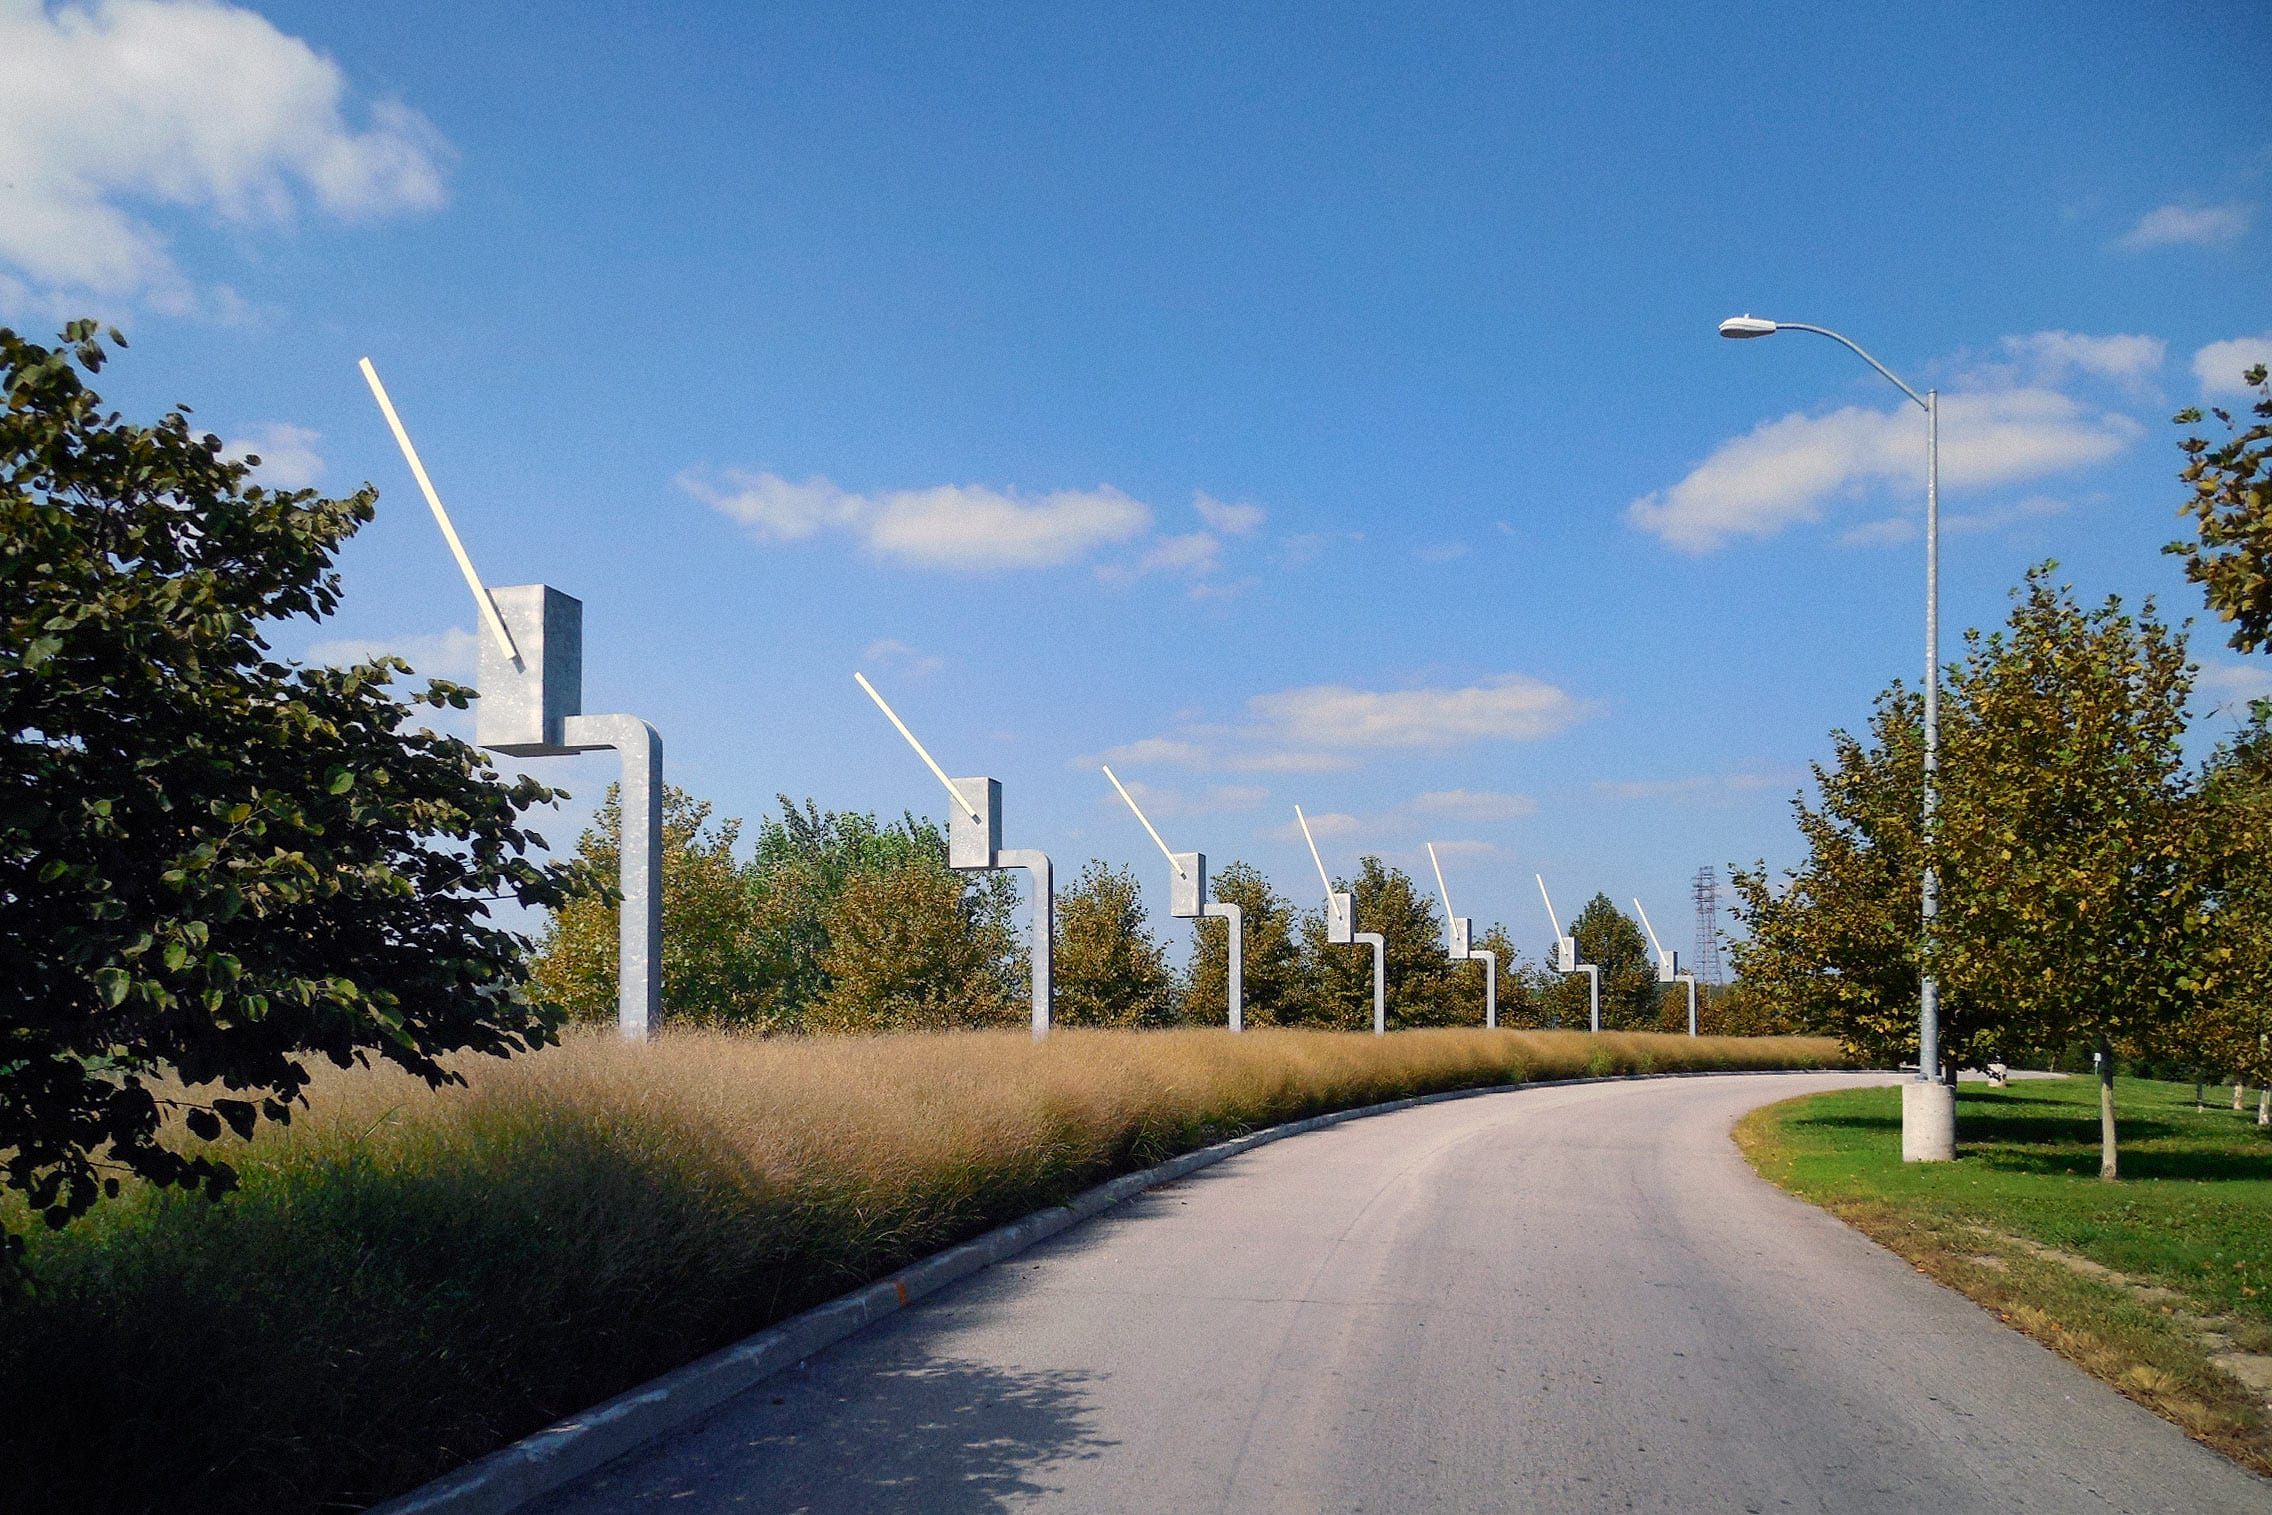 Seven Sentinels kinetic sculpture made in galvanized steel. Each of the parking gate sculptures salute exiting drivers.